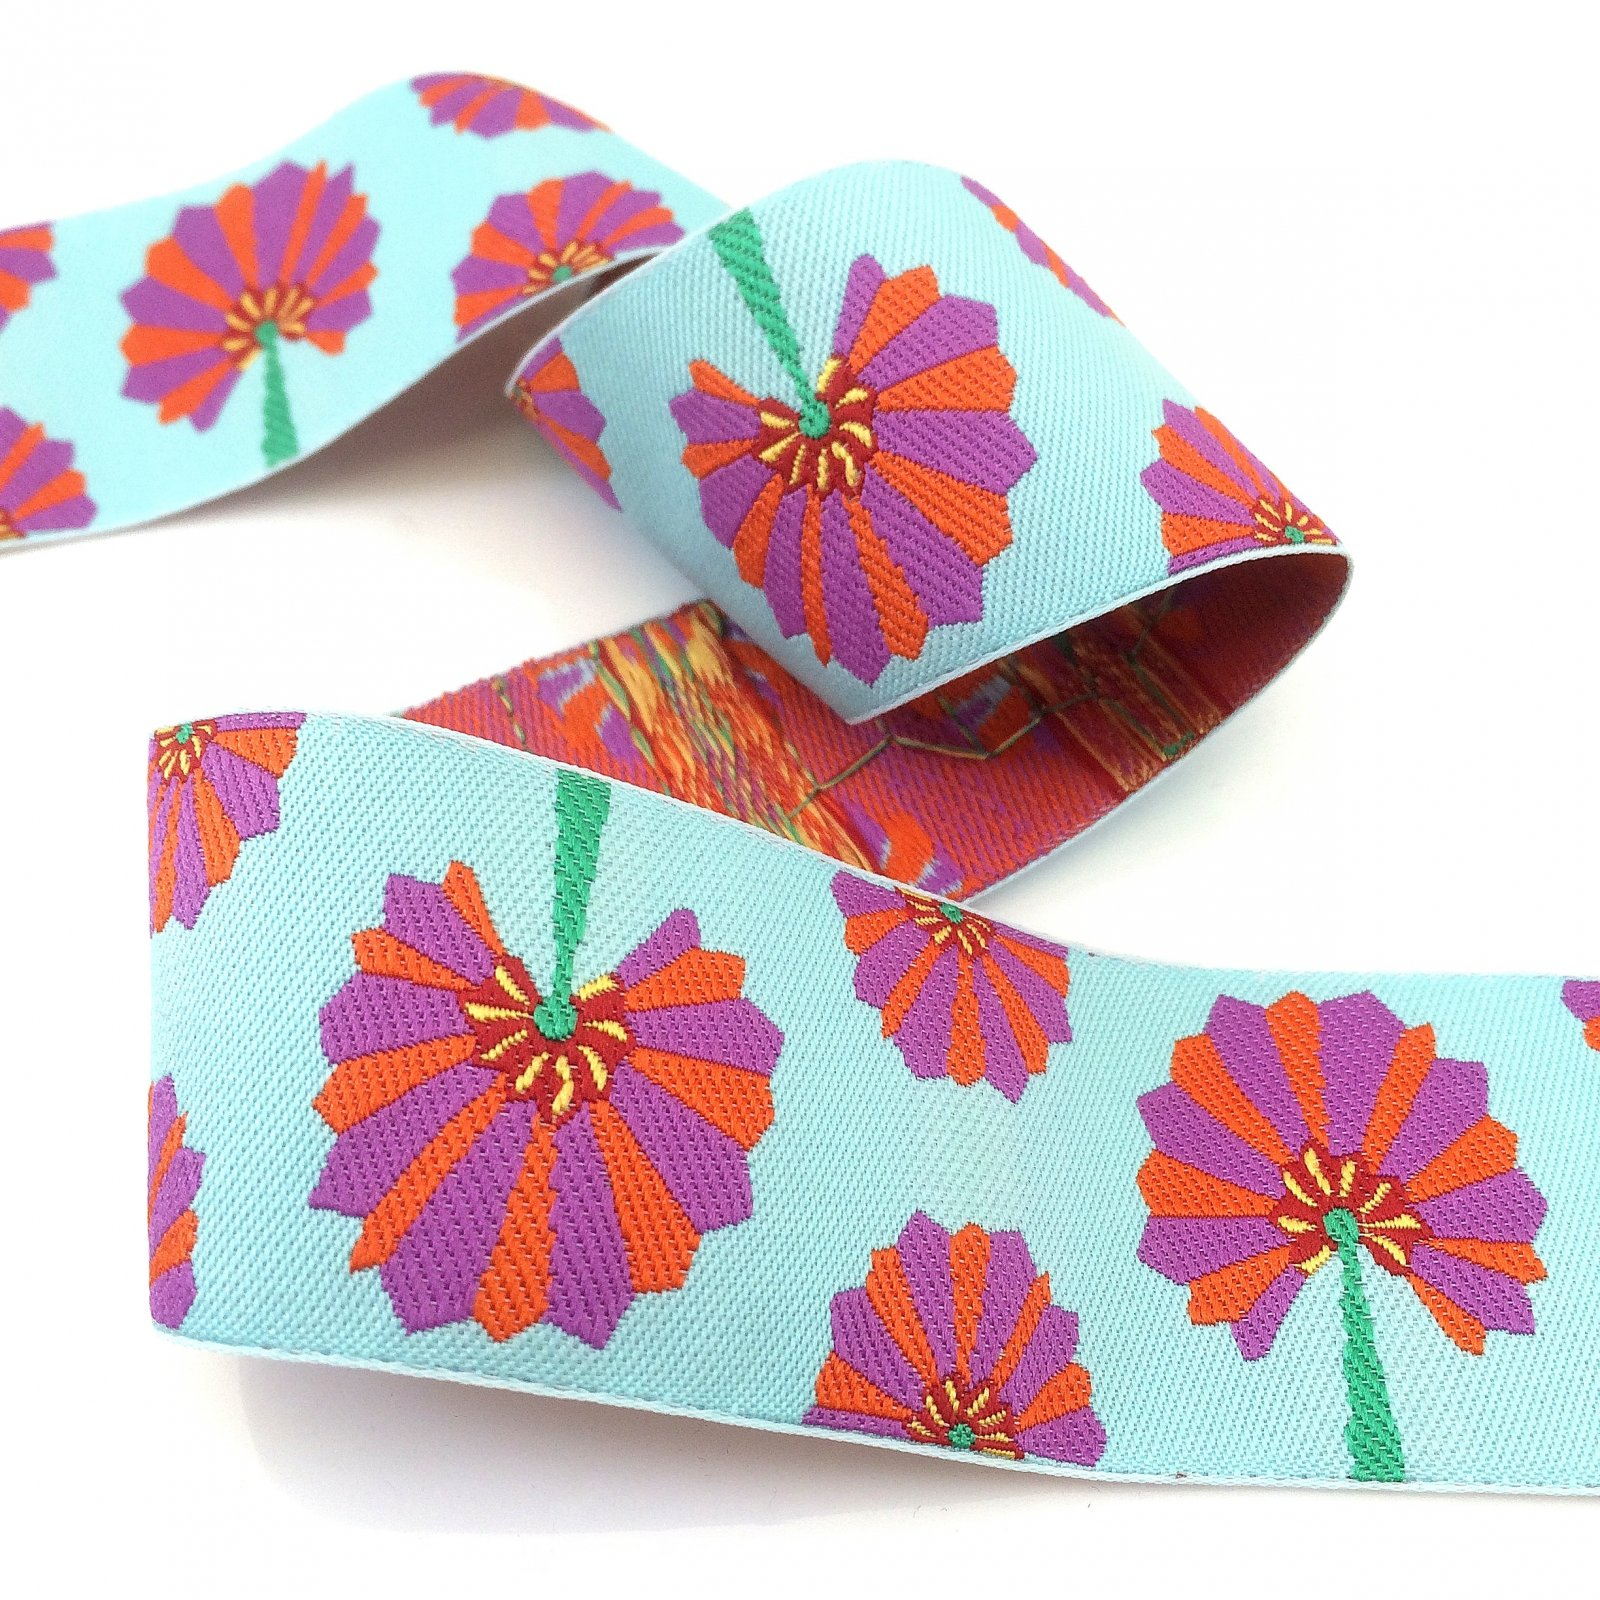 RENAISSANCE RIBBONS - KAFFE FASSETT ORANGE/PURPLE PALM FAN - AQUA